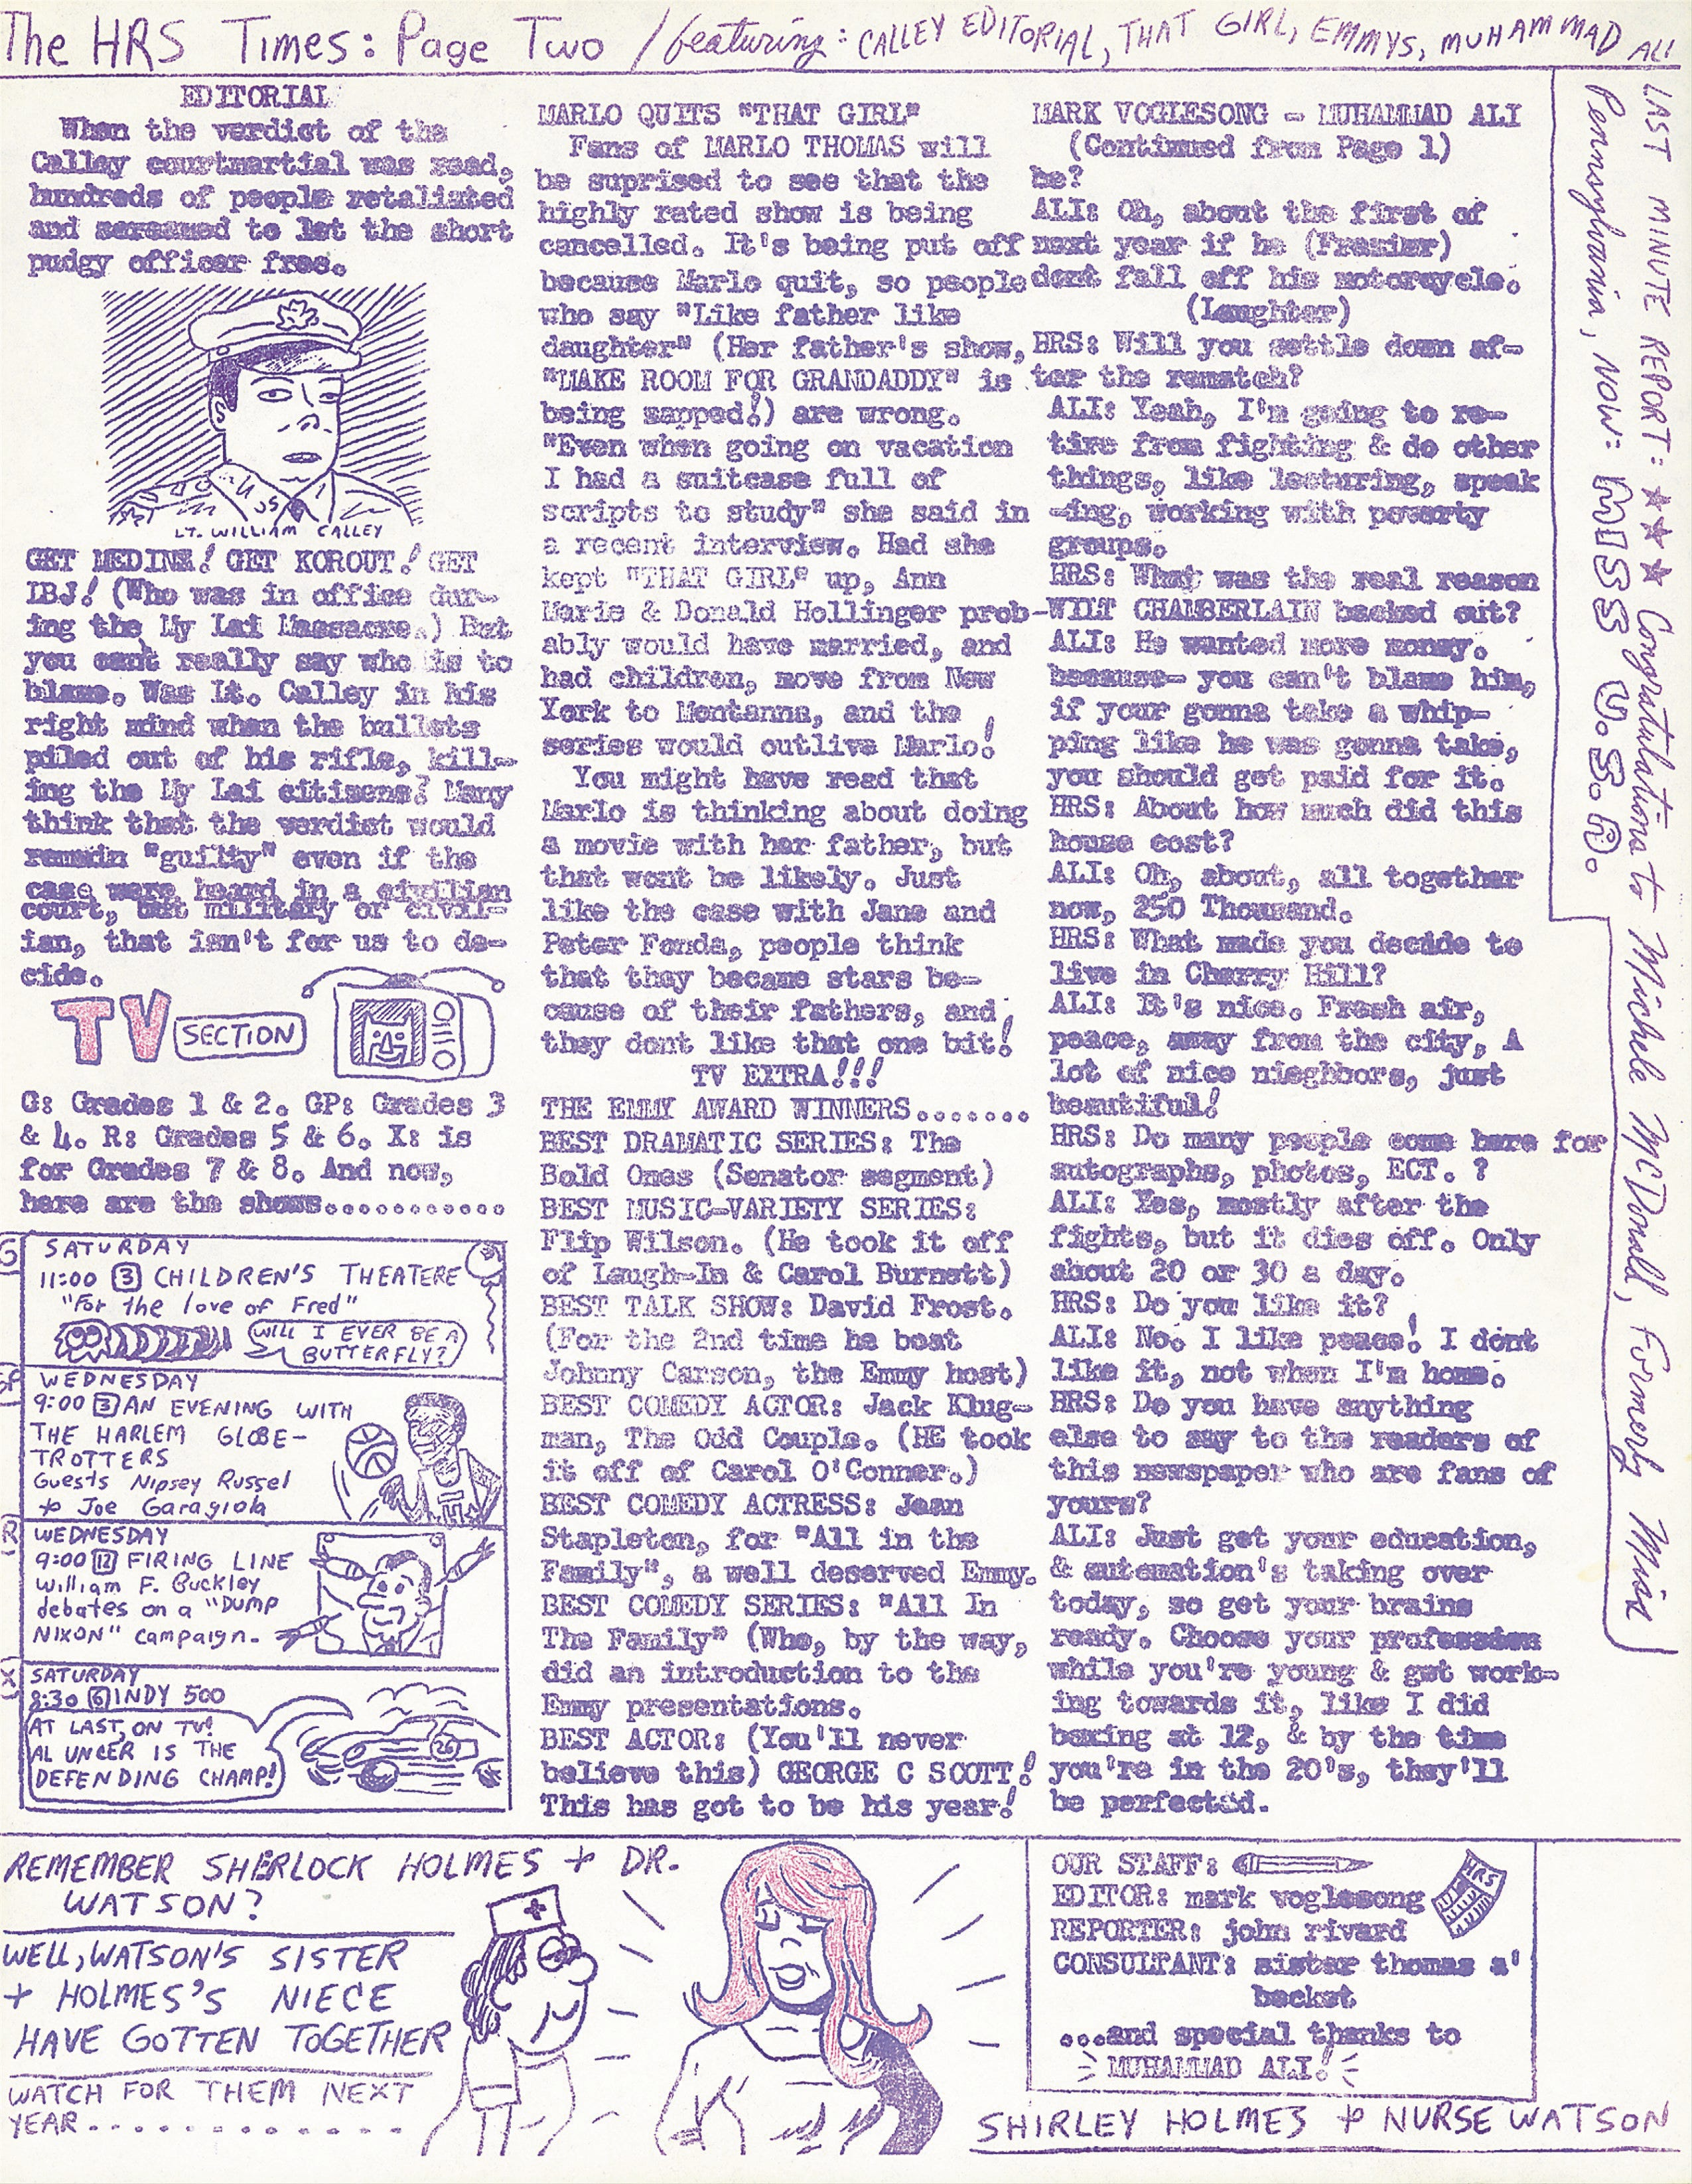 A copy of the interview Mark Voger did with the boxing champion Muhammad Ali for the Holy Rosary School Times in 1971. Voger, who later worked for newspapers for 40 years, went to Ali's Cherry Hill home along with his little brother and a friend and interviewed Ali.